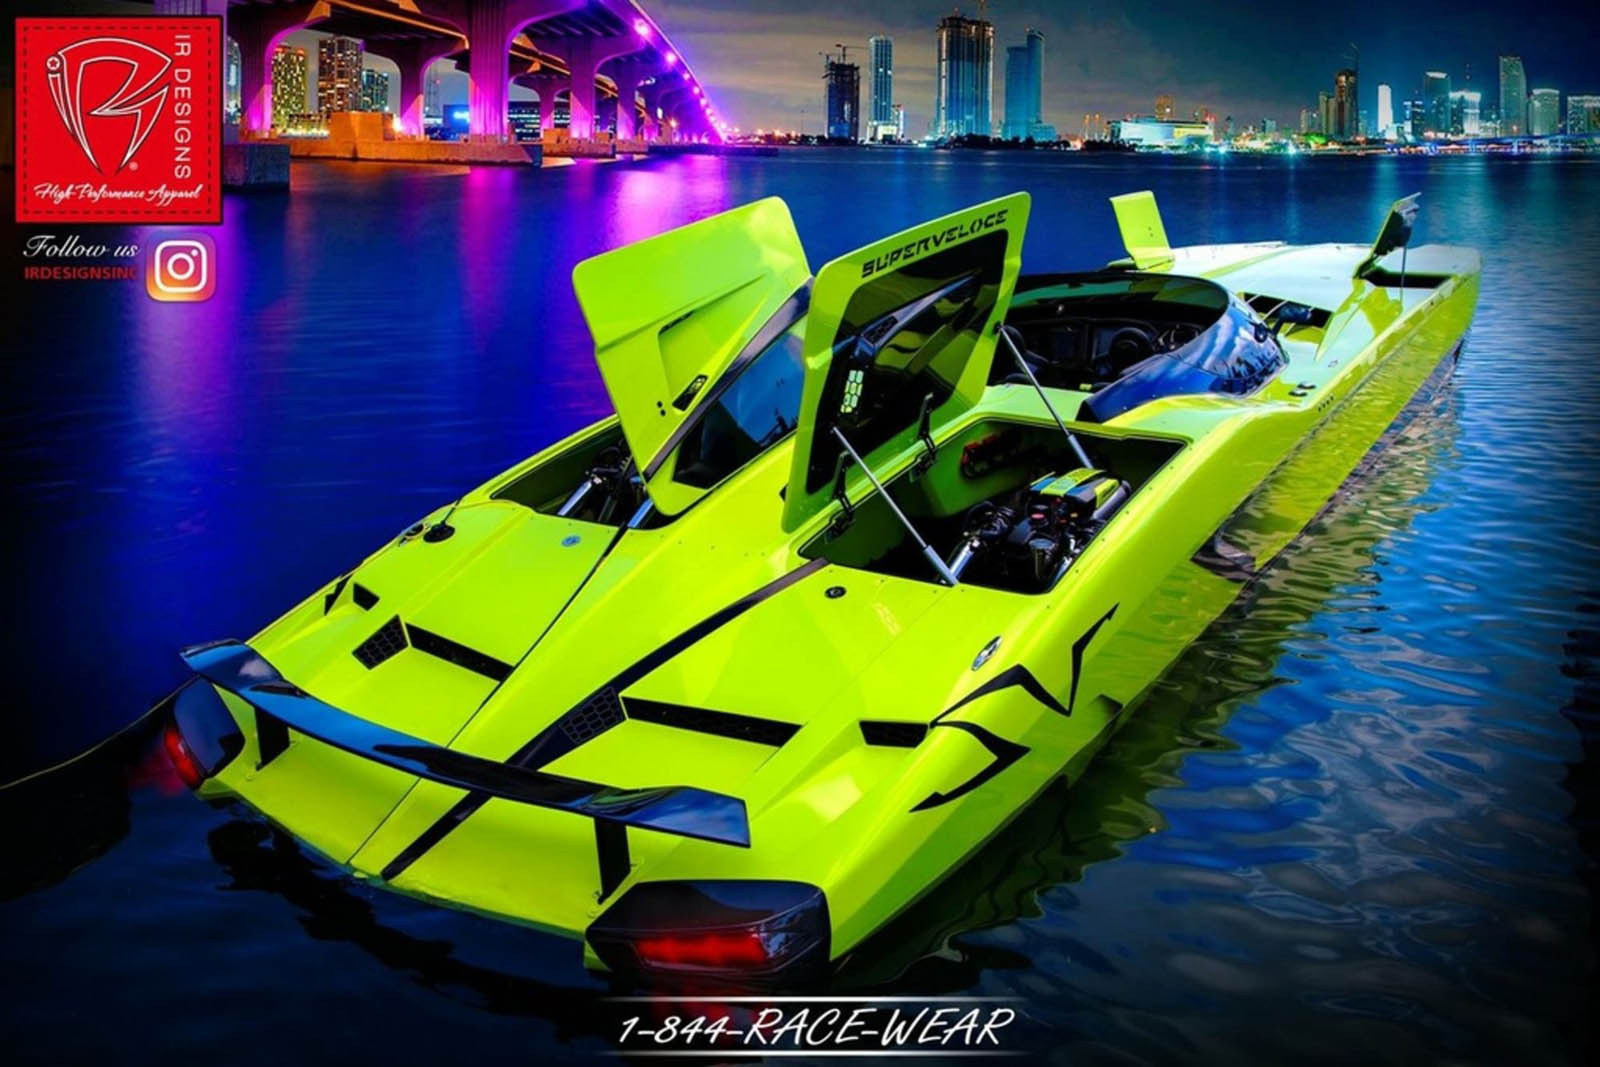 Buy This Aventador Sv And A Matching Mti G6 Boat